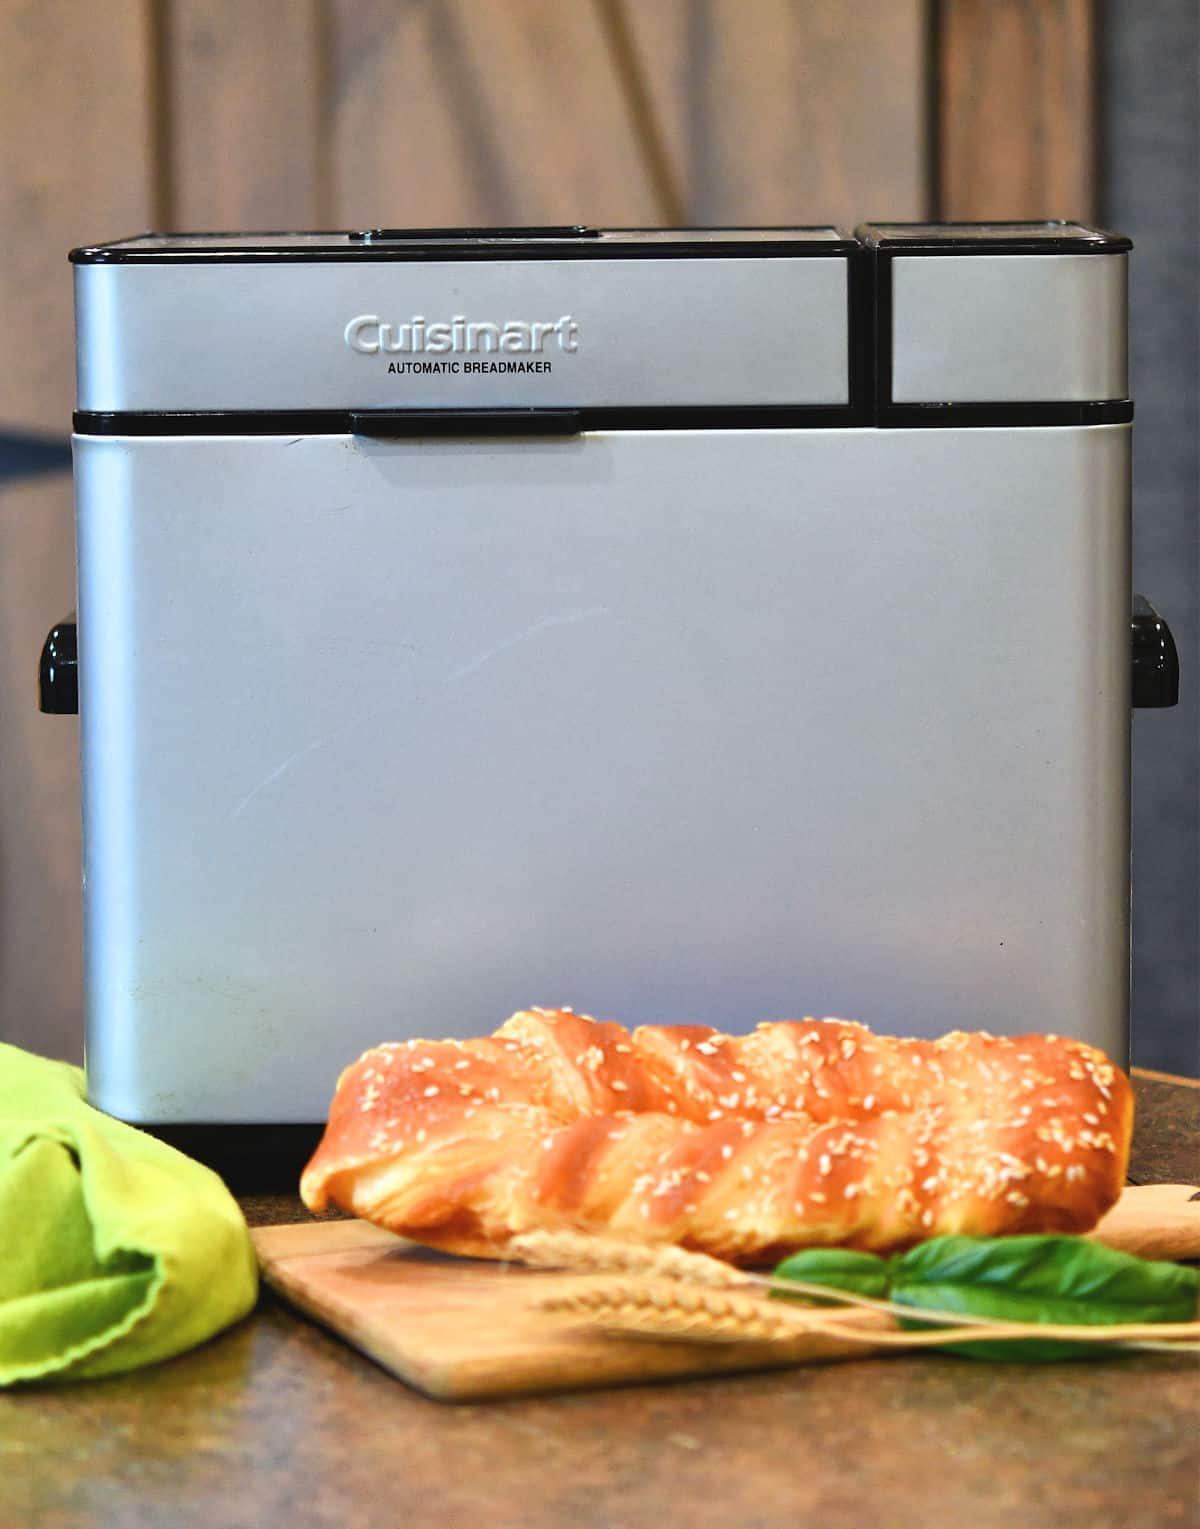 Cuisinart bread maker on a countertop